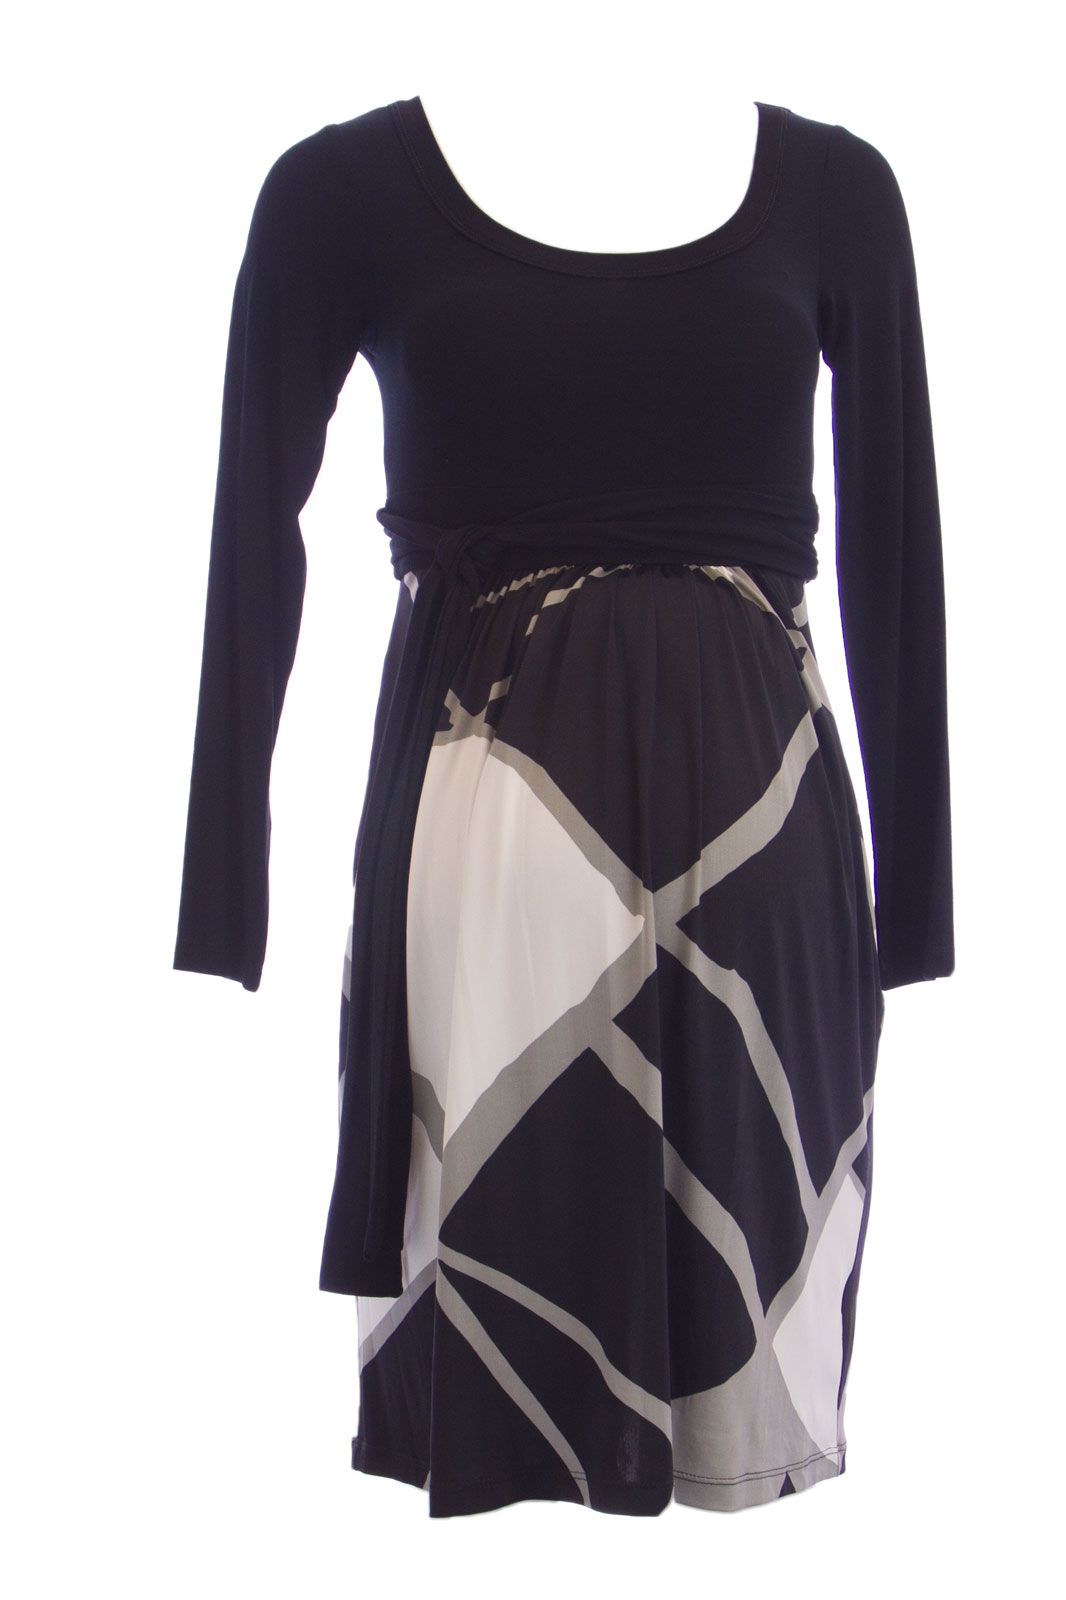 OLIAN Maternity Women's Abstract Print Contrast Skirt Dress X-Small Black by N068